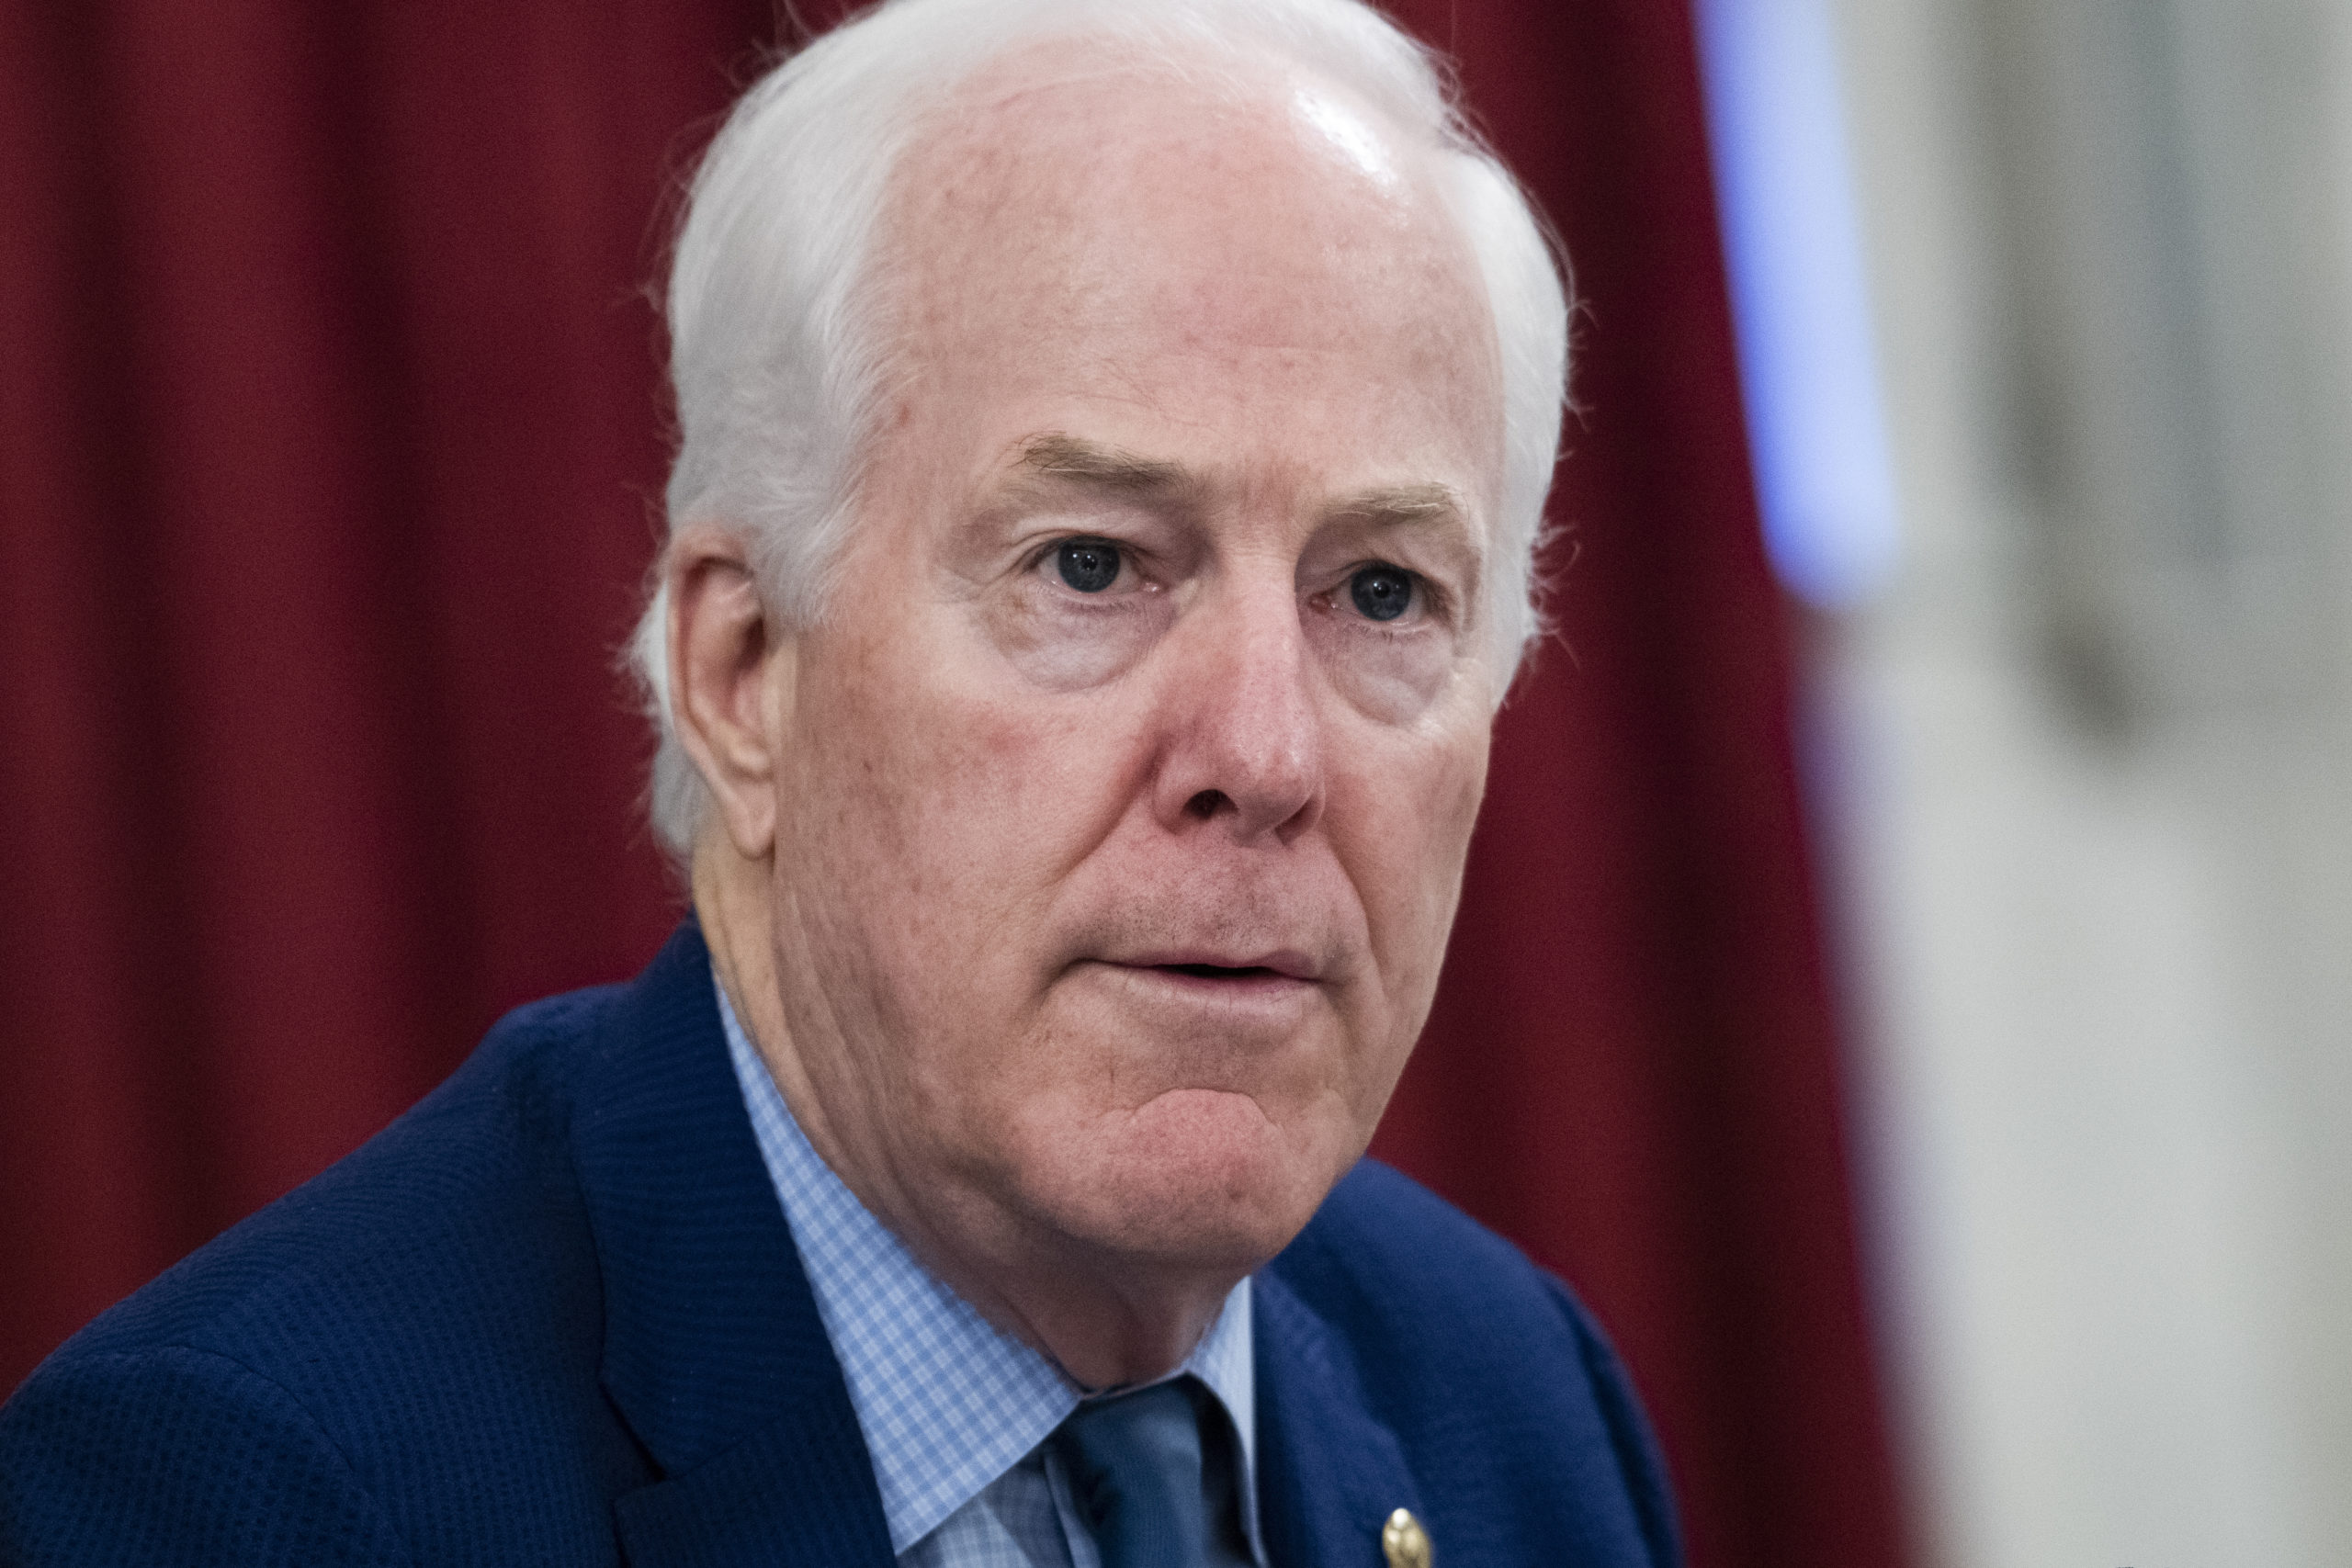 UNITED STATES - JUNE 24: Sen. John Cornyn, R-Texas, speaks during the Senate Select Intelligence Committee confirmation hearing for Peter Michael Thomson, nominee to be inspector general of the Central Intelligence Agency, in Russell Building on Wednesday, June 24, 2020. (Photo By Tom Williams/CQ Roll Call via AP Images)